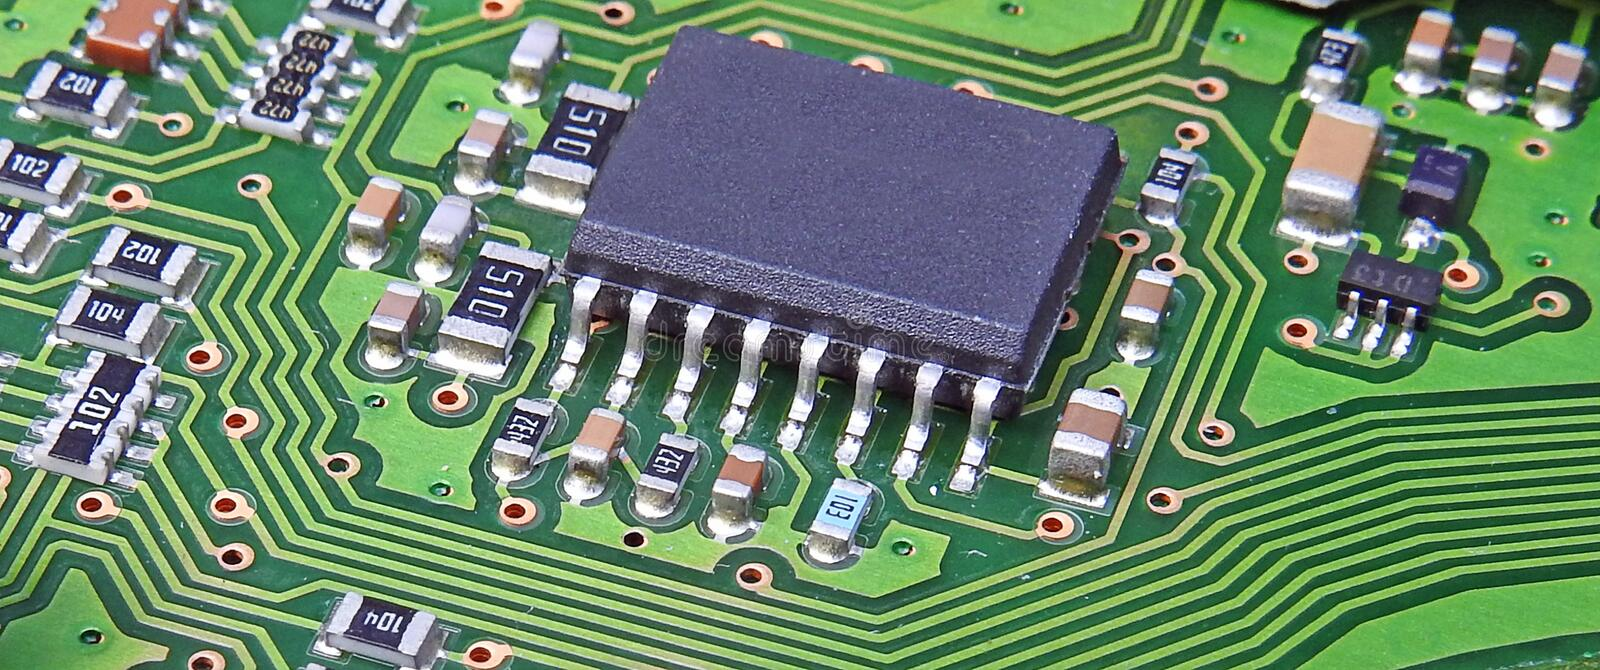 Pcb printed circuit board comms unit control panel switches points microchip electronic royalty free stock photos